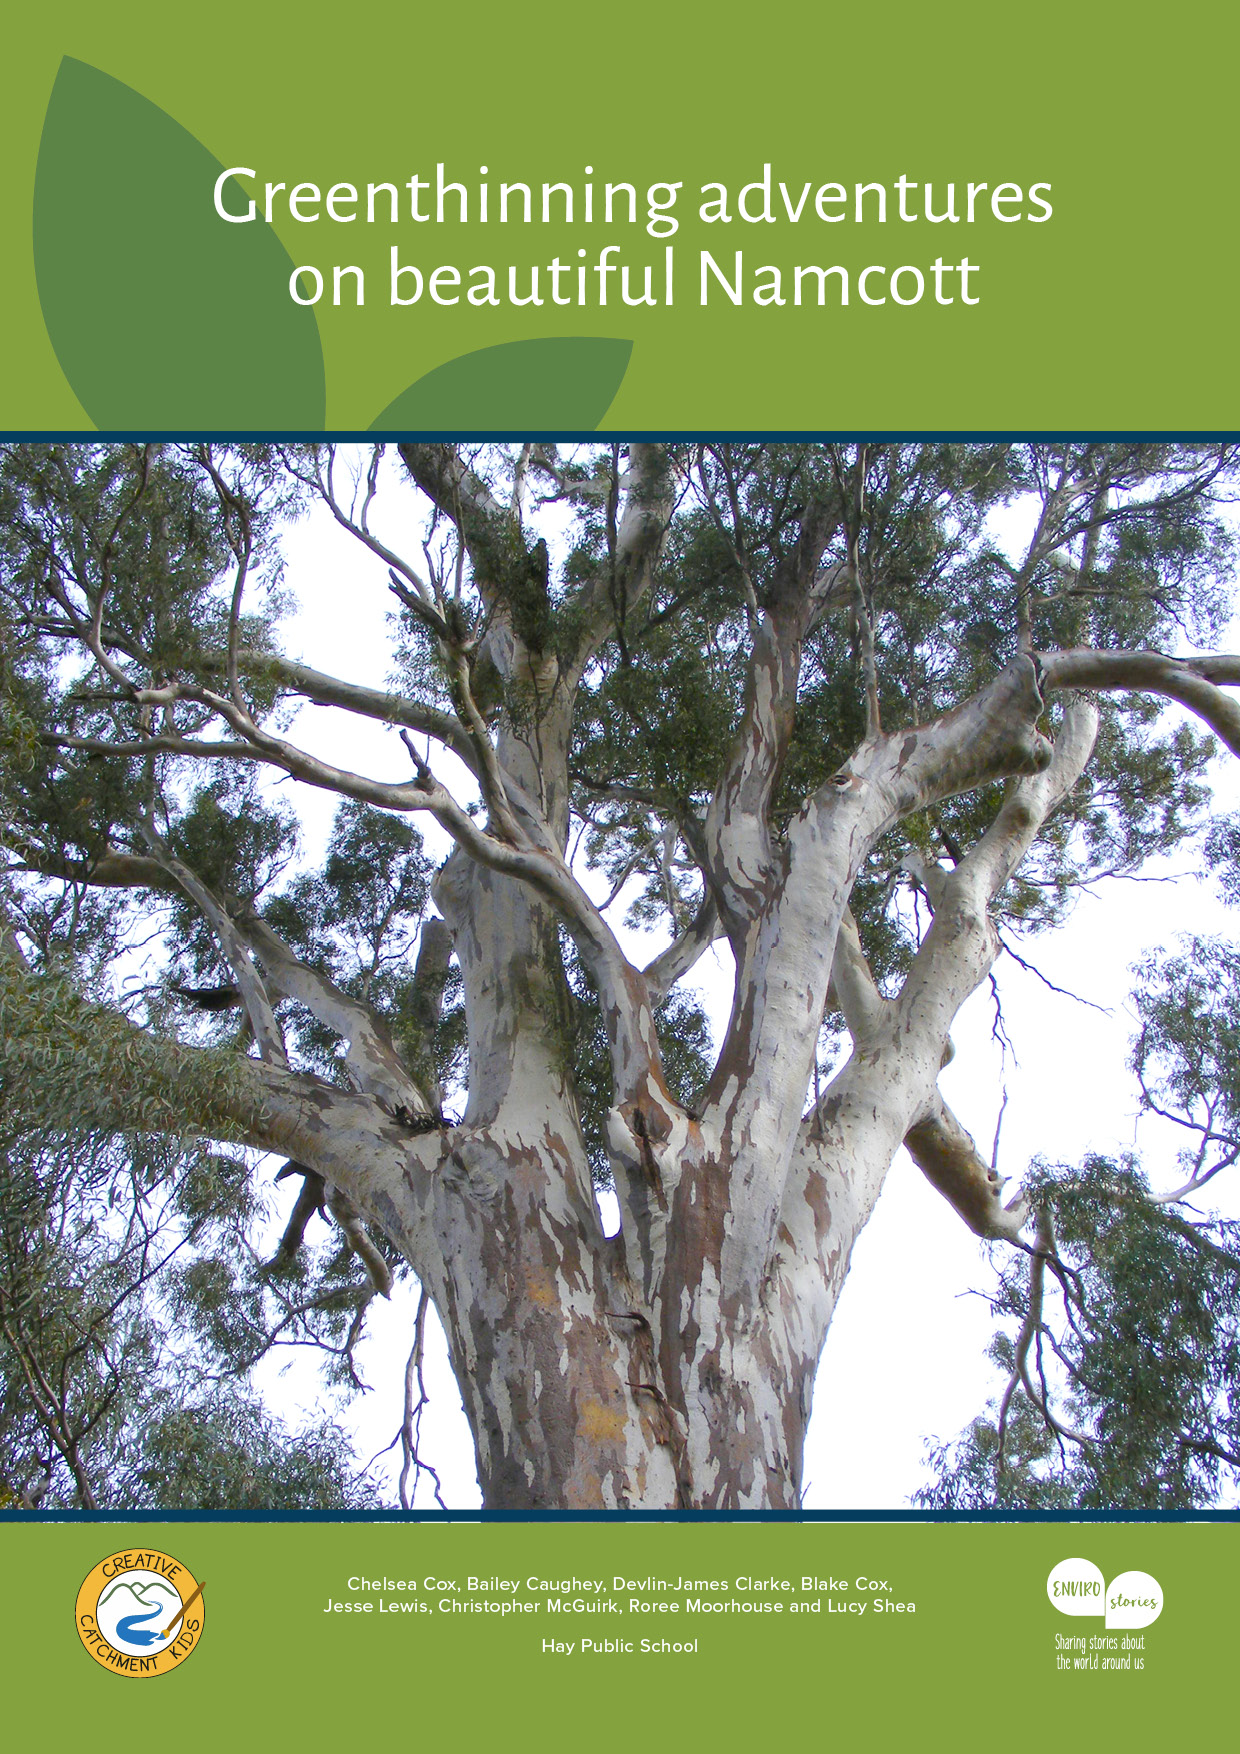 Greenthinning adventures on beautiful Namcott